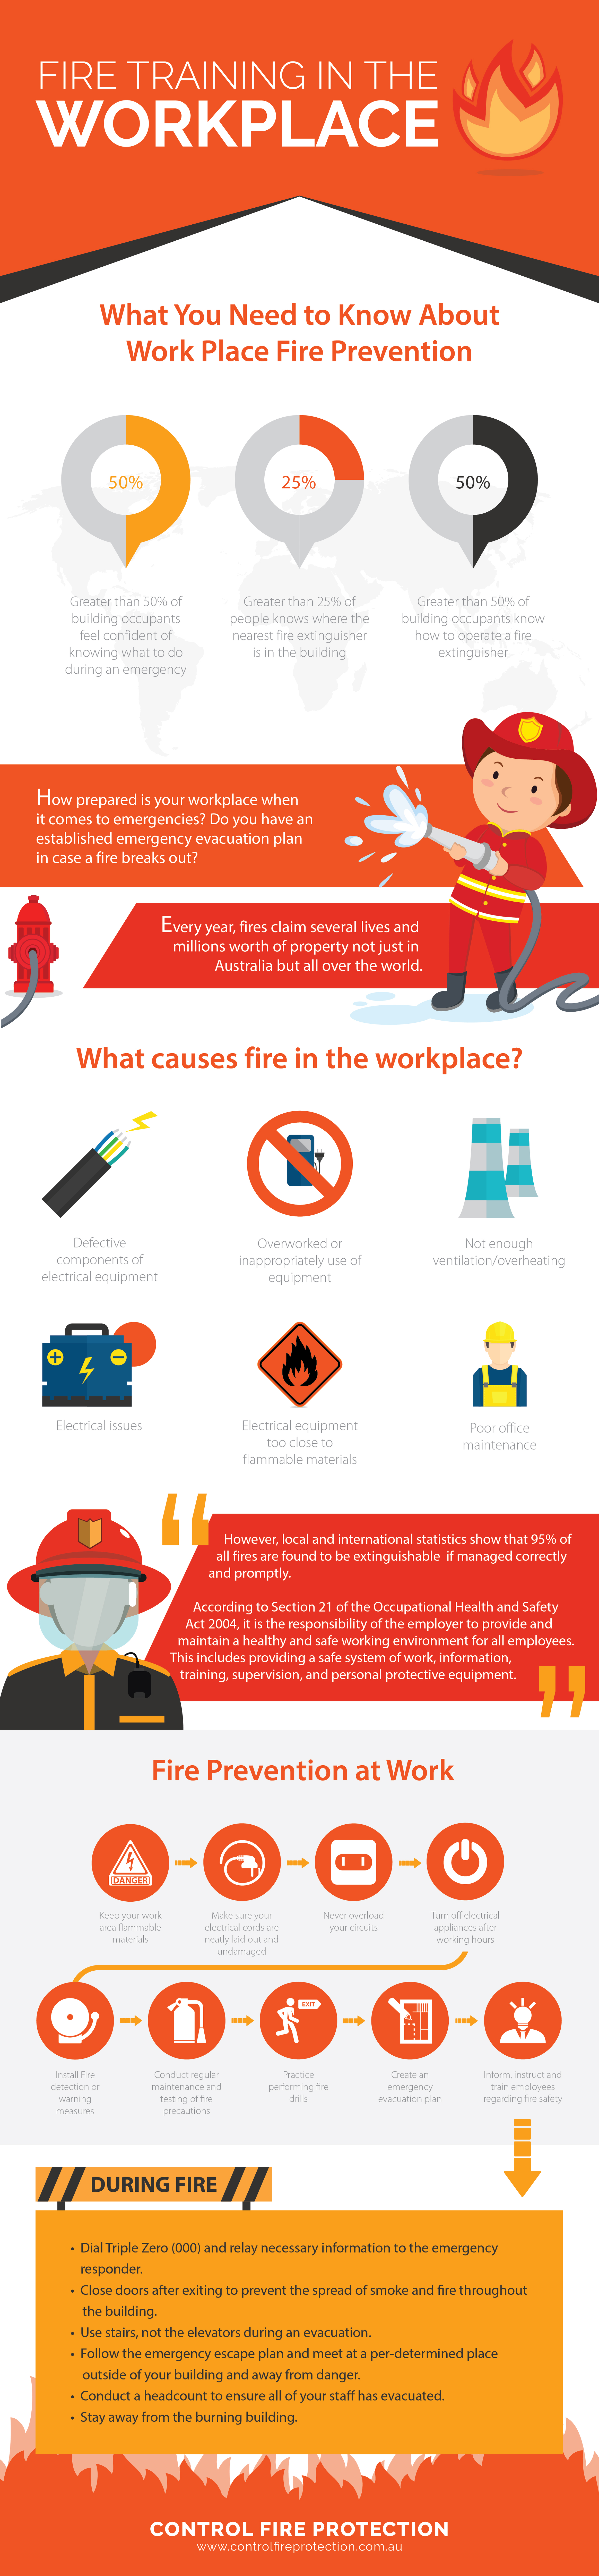 Control Fire Protection Fire Safety Training Infographic - AUSTRALIA